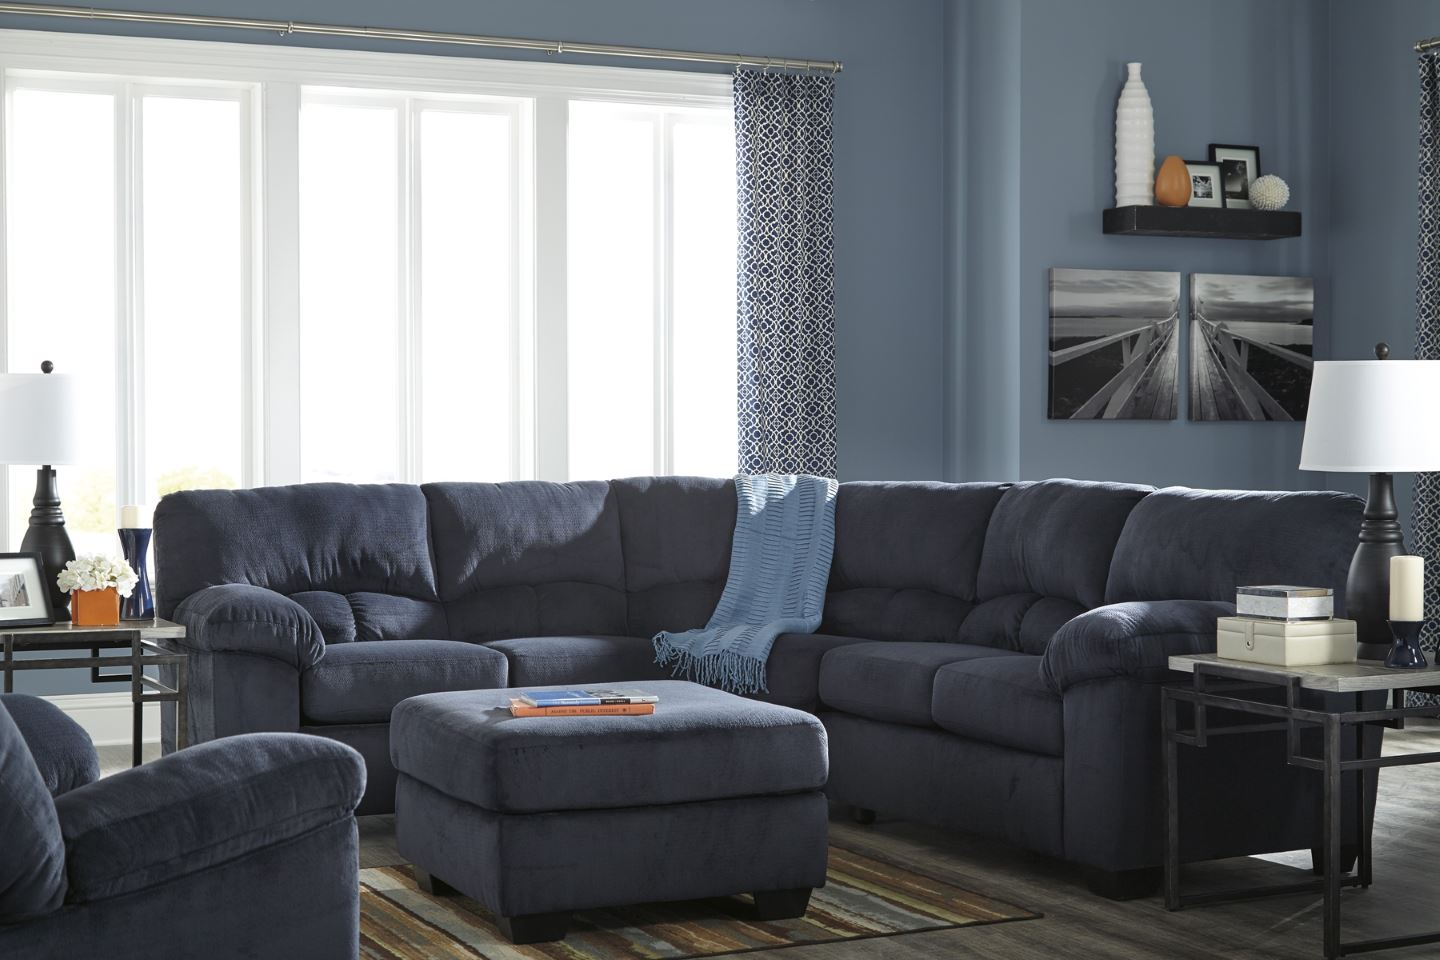 Dailey Sectional 95403 Dallas Designer Furniture 4 Less